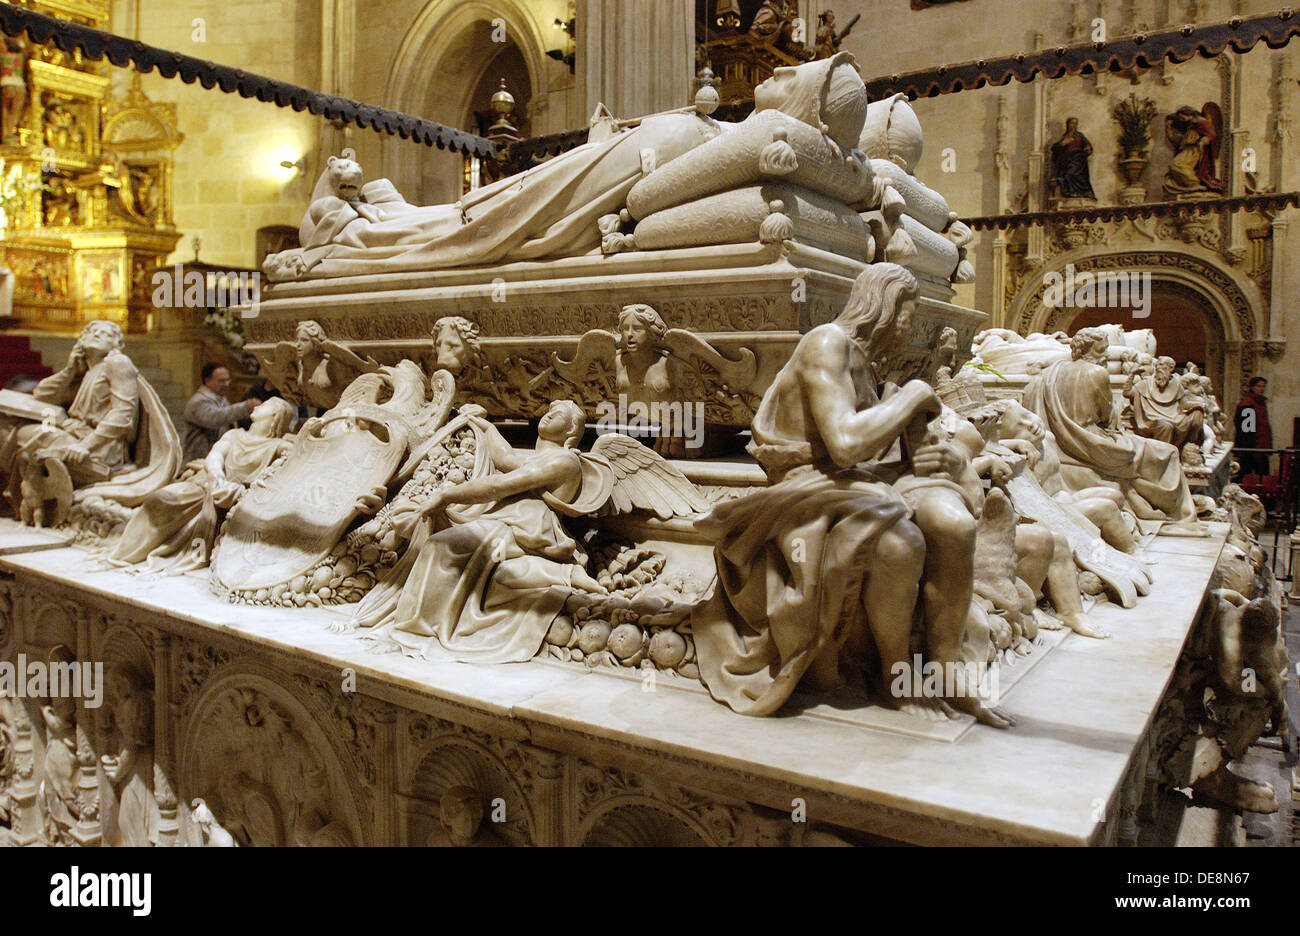 Catholic Monarchs´ sepulchre by Domenico Fancelli (16th century) in the Royal Chapel of the cathedral. Granada. Spain - Stock Image